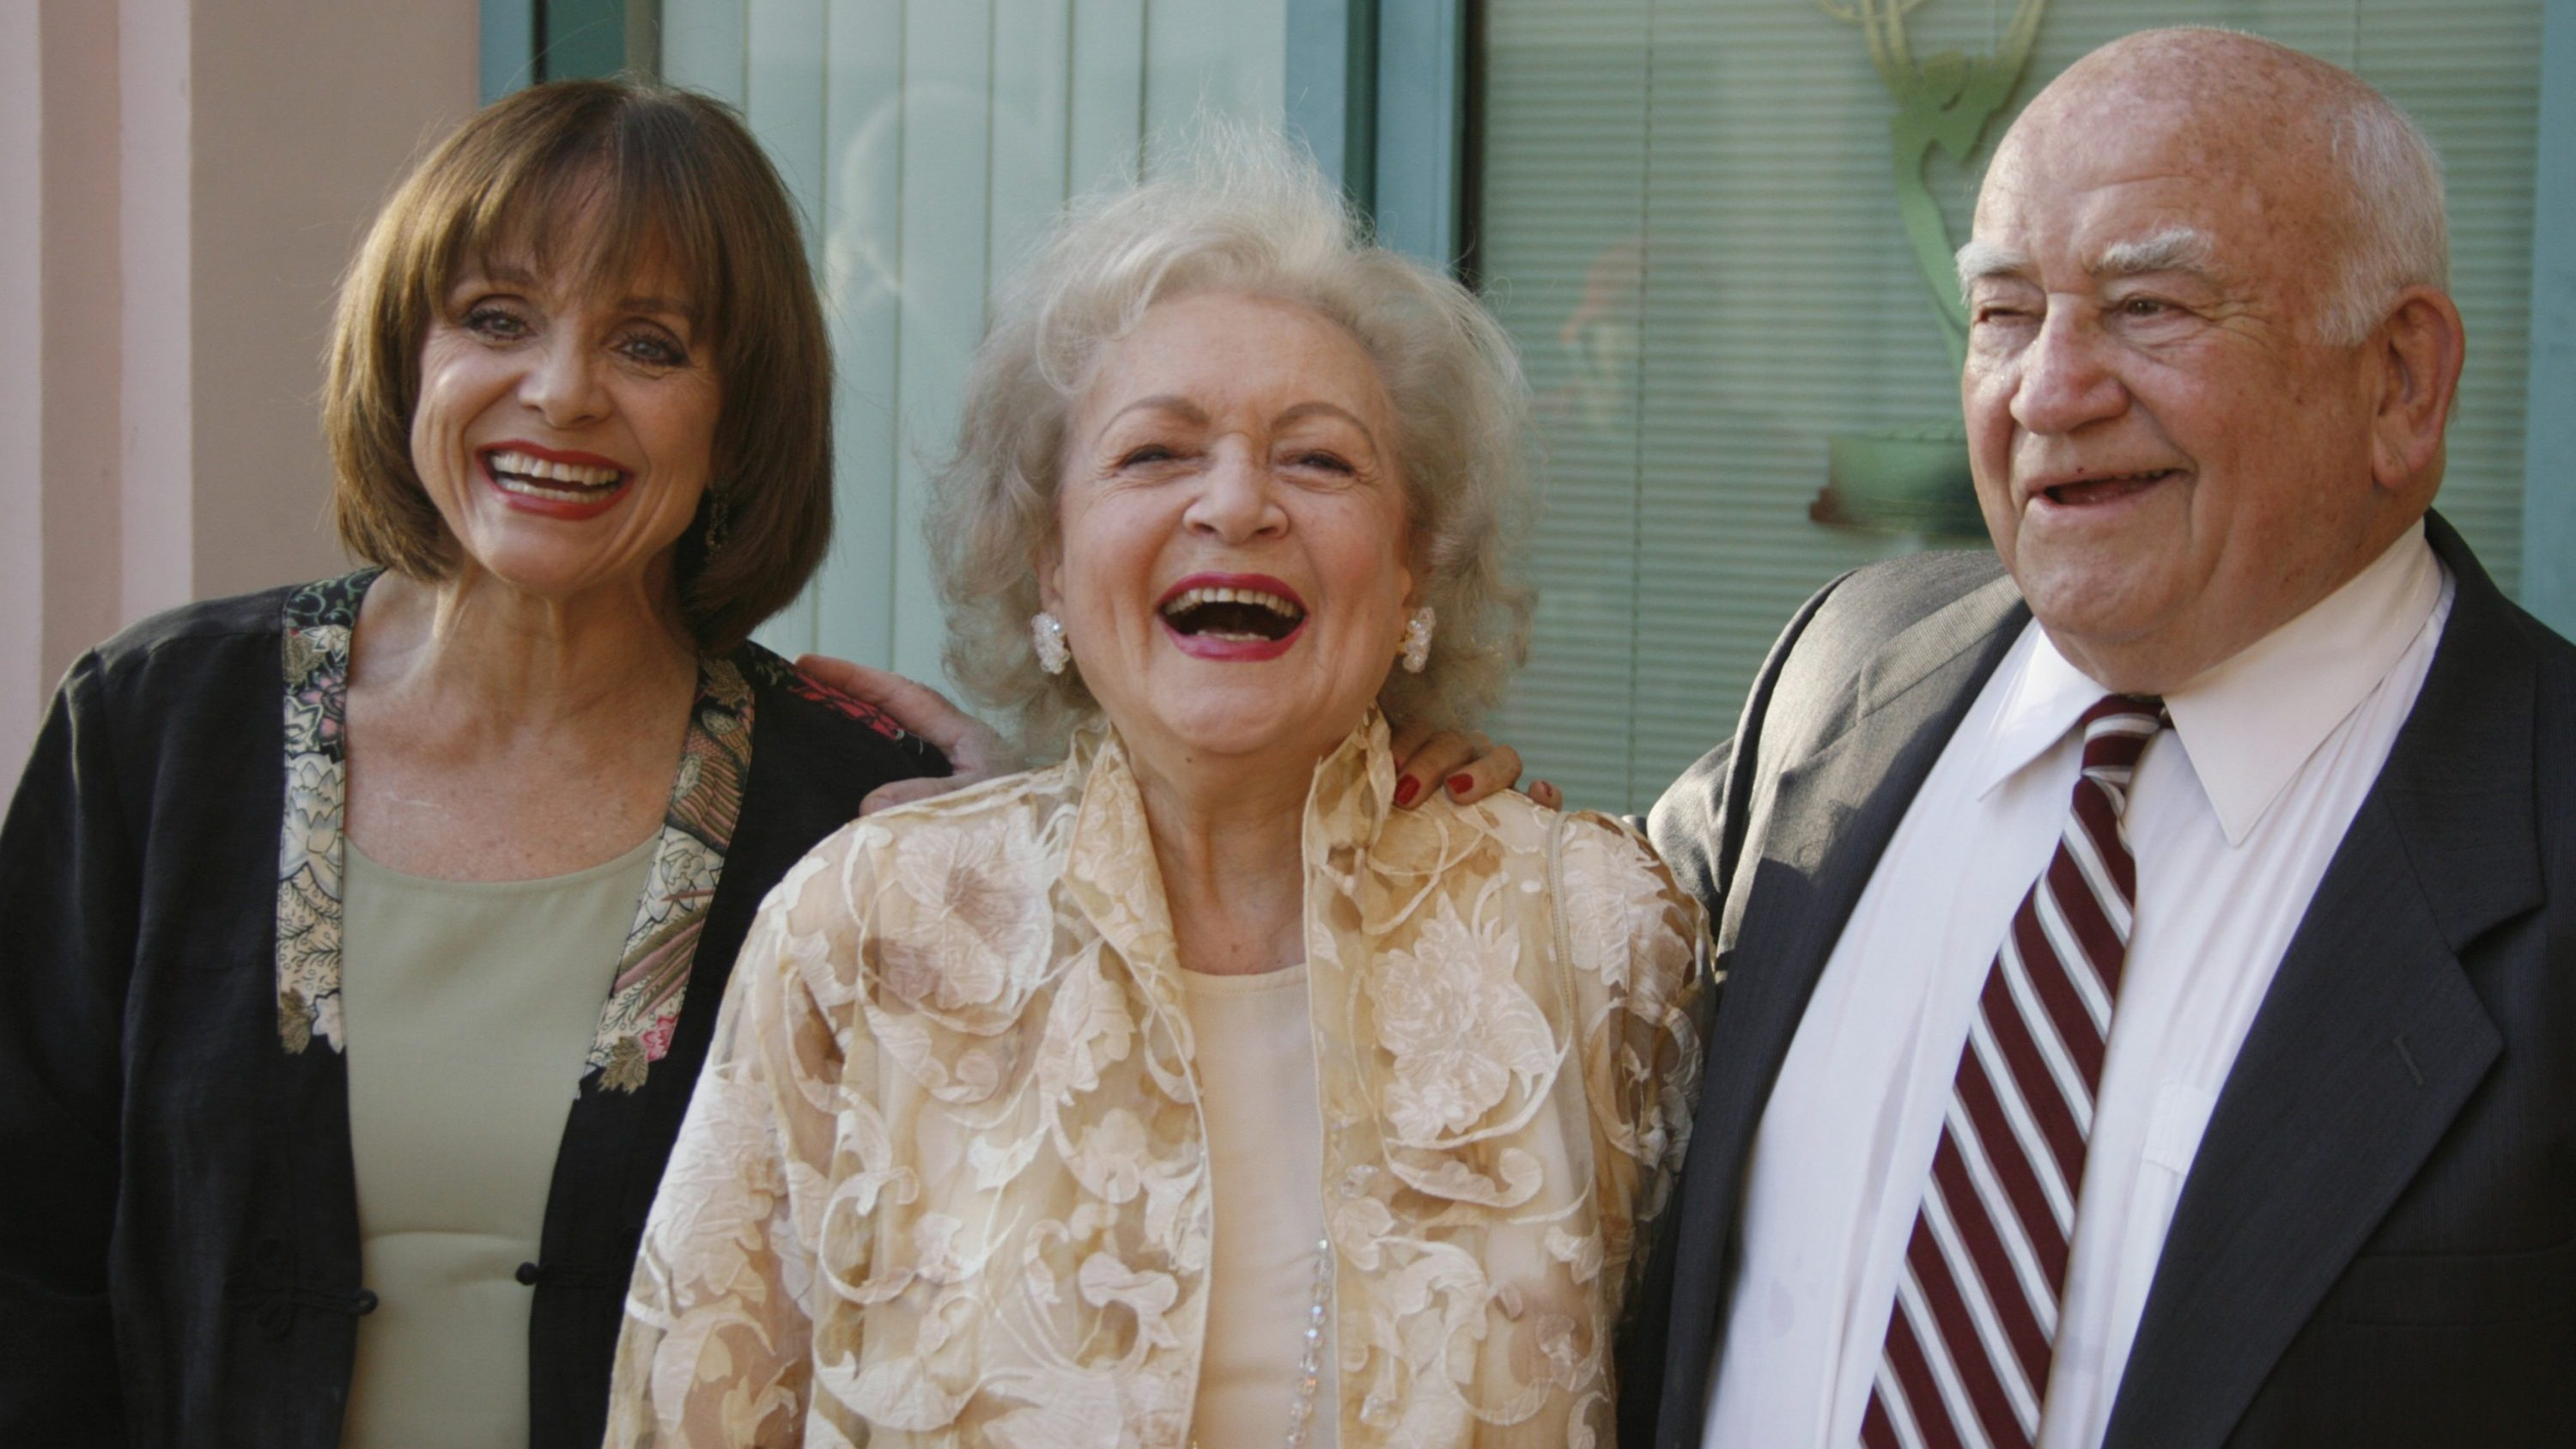 Ed Asner with his former castmates Betty White and Valerie Harper